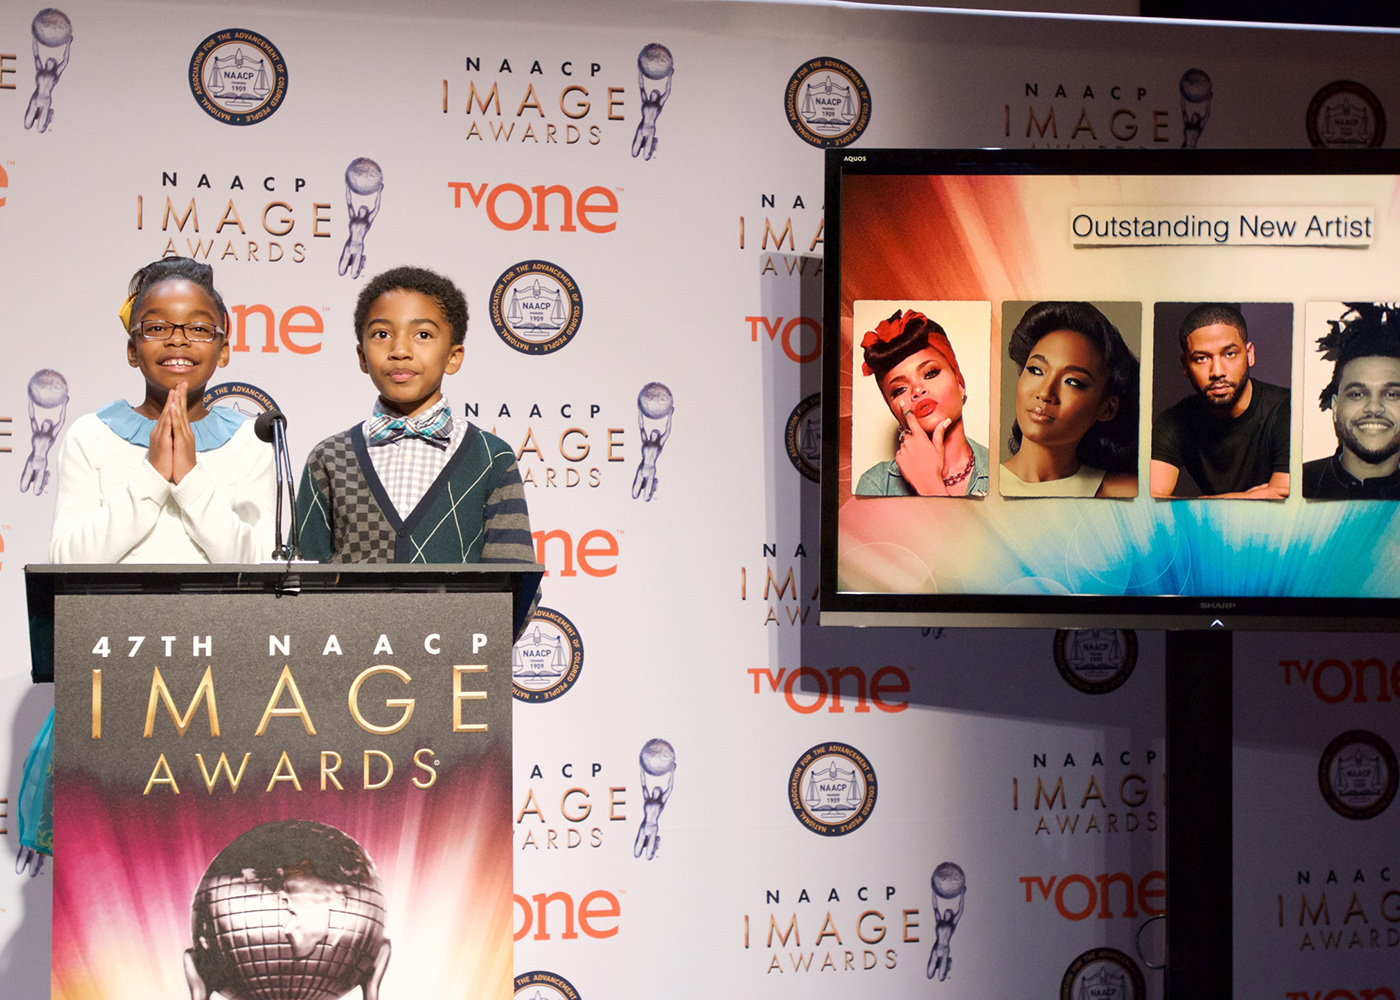 Photo of PRESS RELEASE: The 47th NAACP IMAGE AWARDS NOMINEES ANNOUNCED